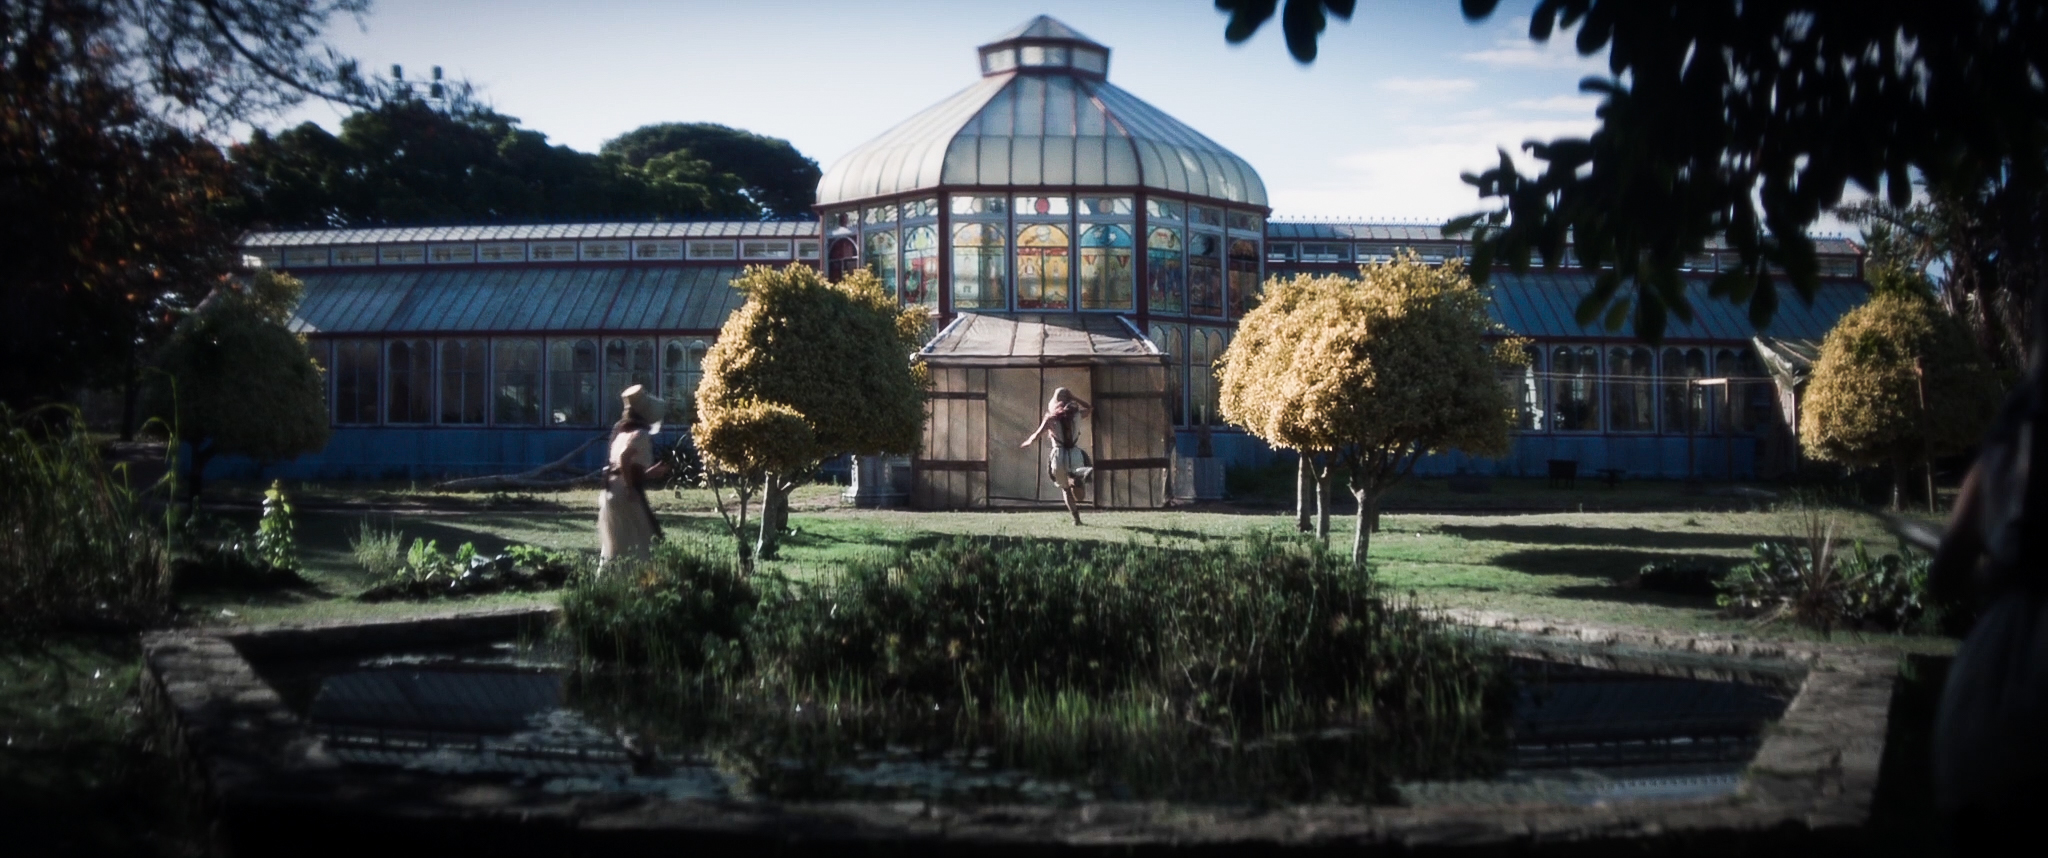 A greenhouse with stained glass windows visible from afar. Two figures can be seen from afar— one running in front of the building and the other outside. It is daytime, and they are surrounded by green grass.